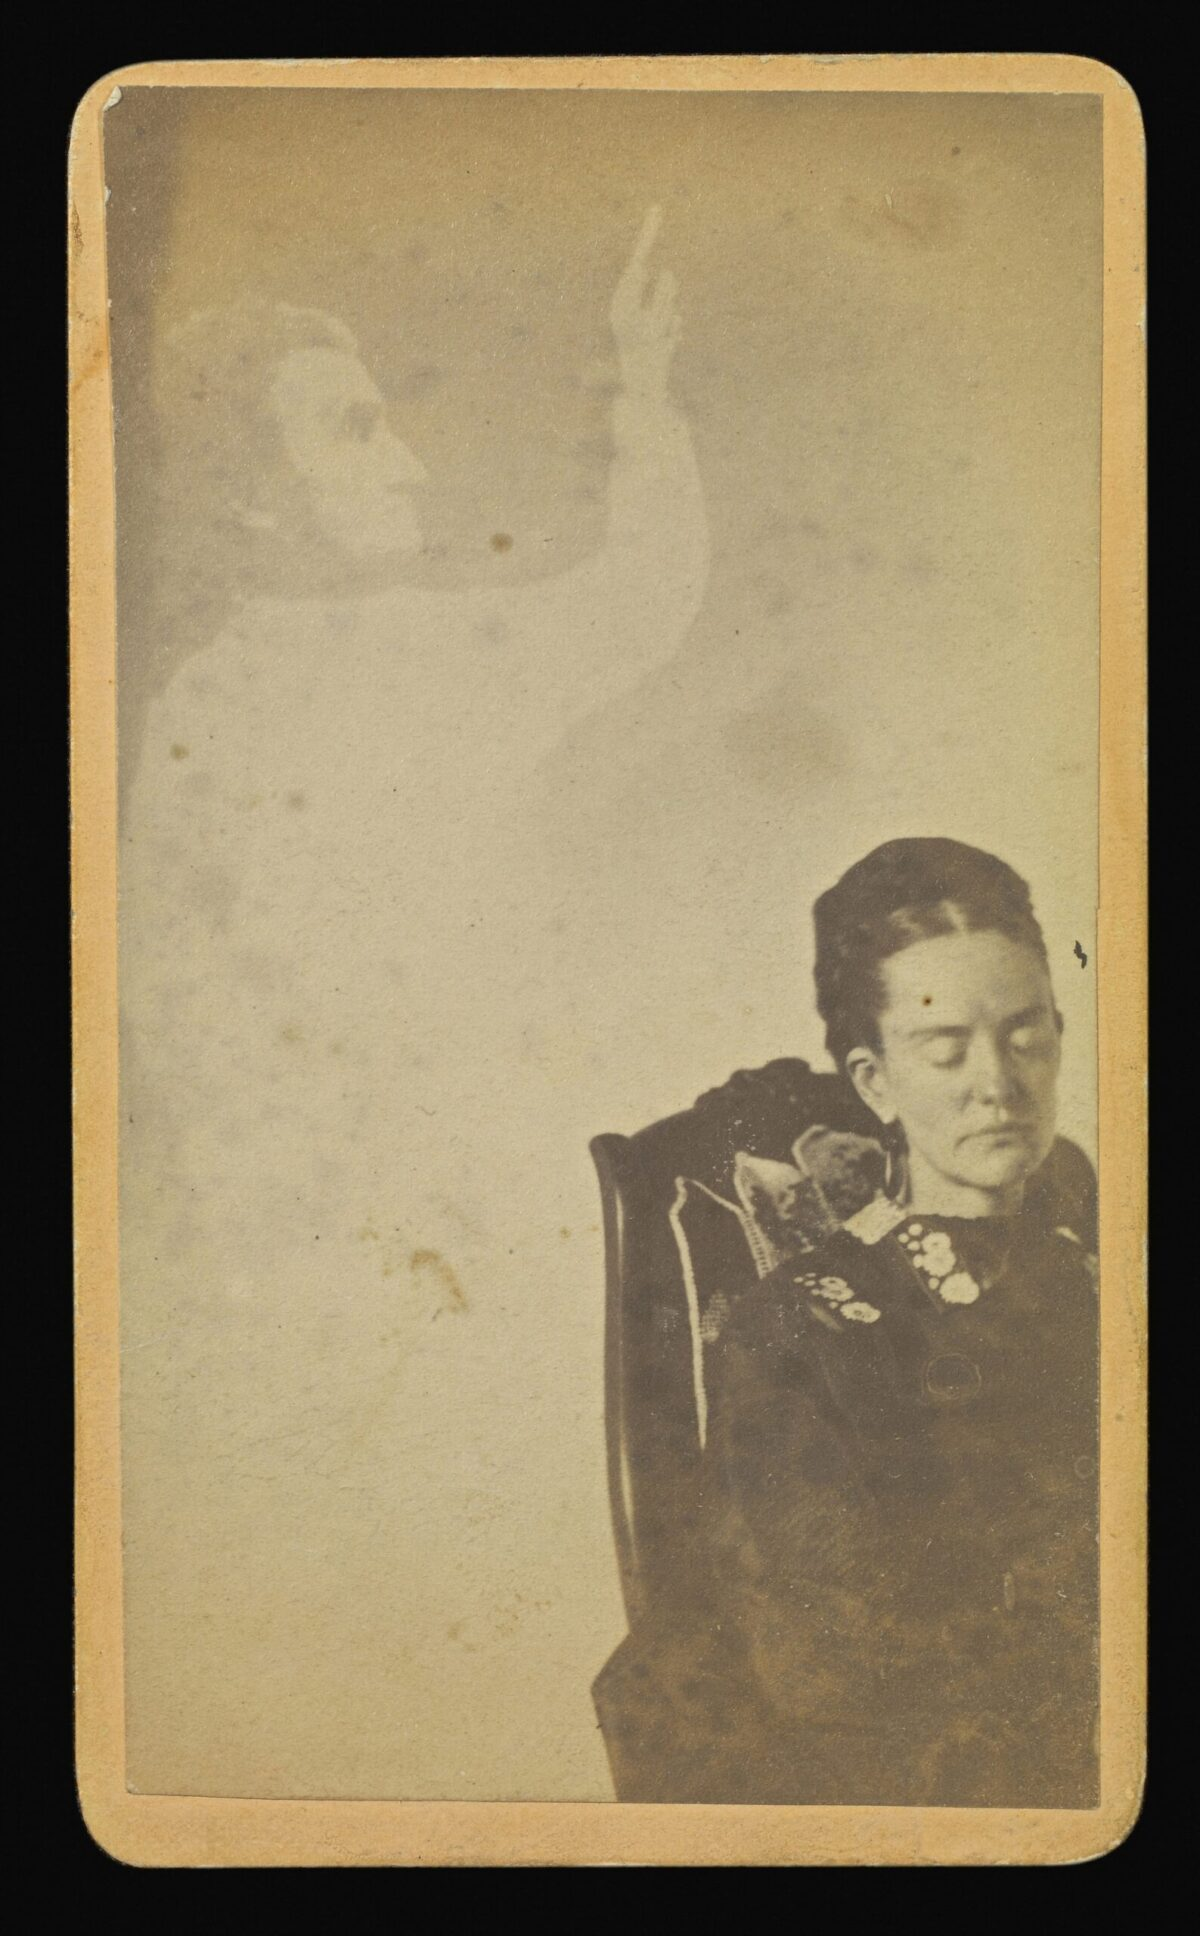 william mumler mary todd lincoln abraham ghost photographer spirit last words photography apparition